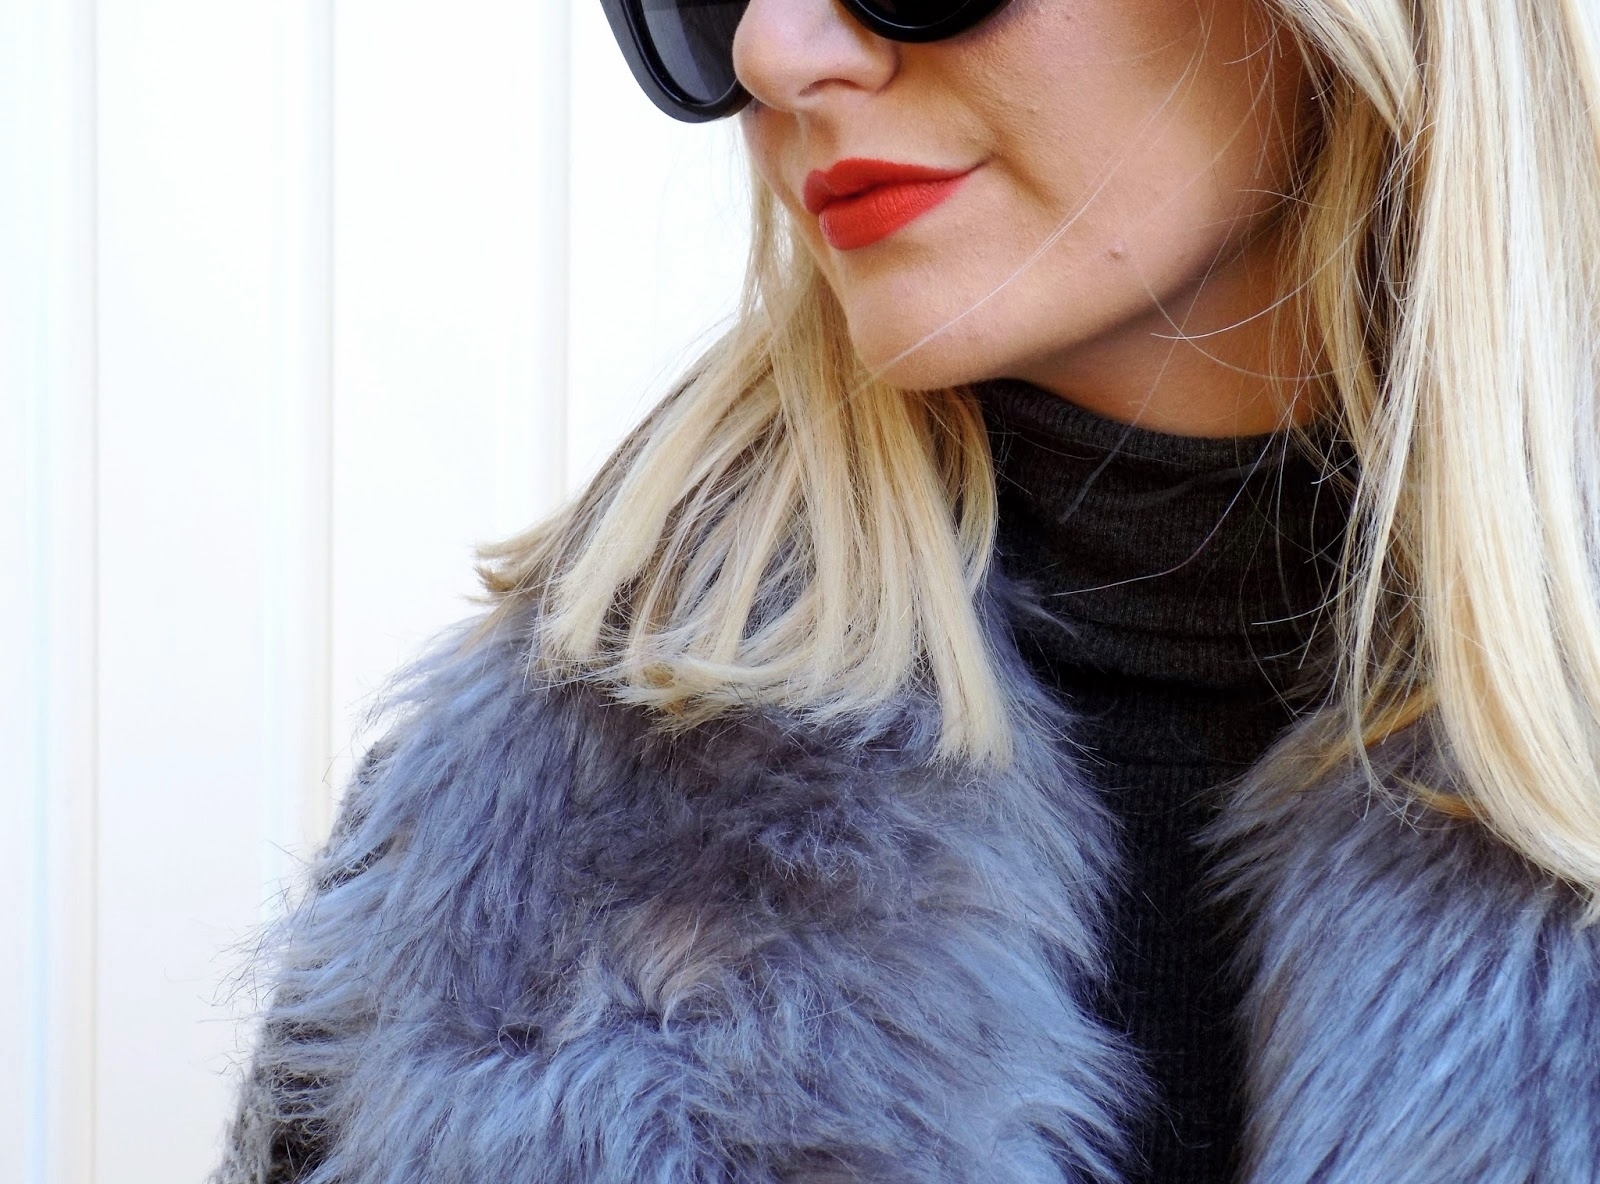 close up of face wearing sunglasses and red lipstick